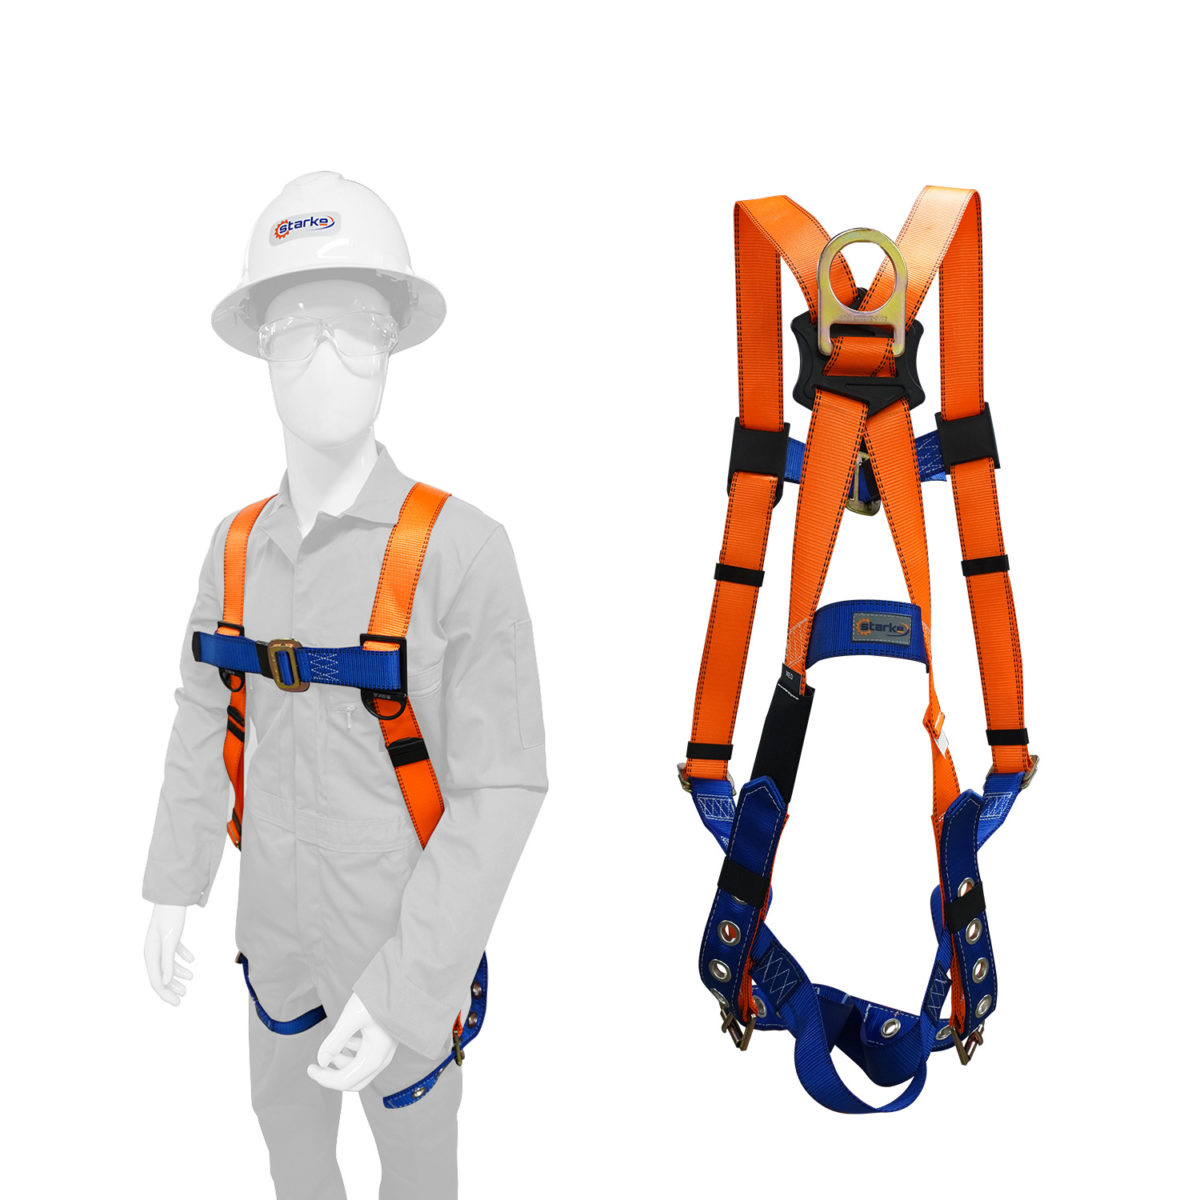 Starke Basic Harness